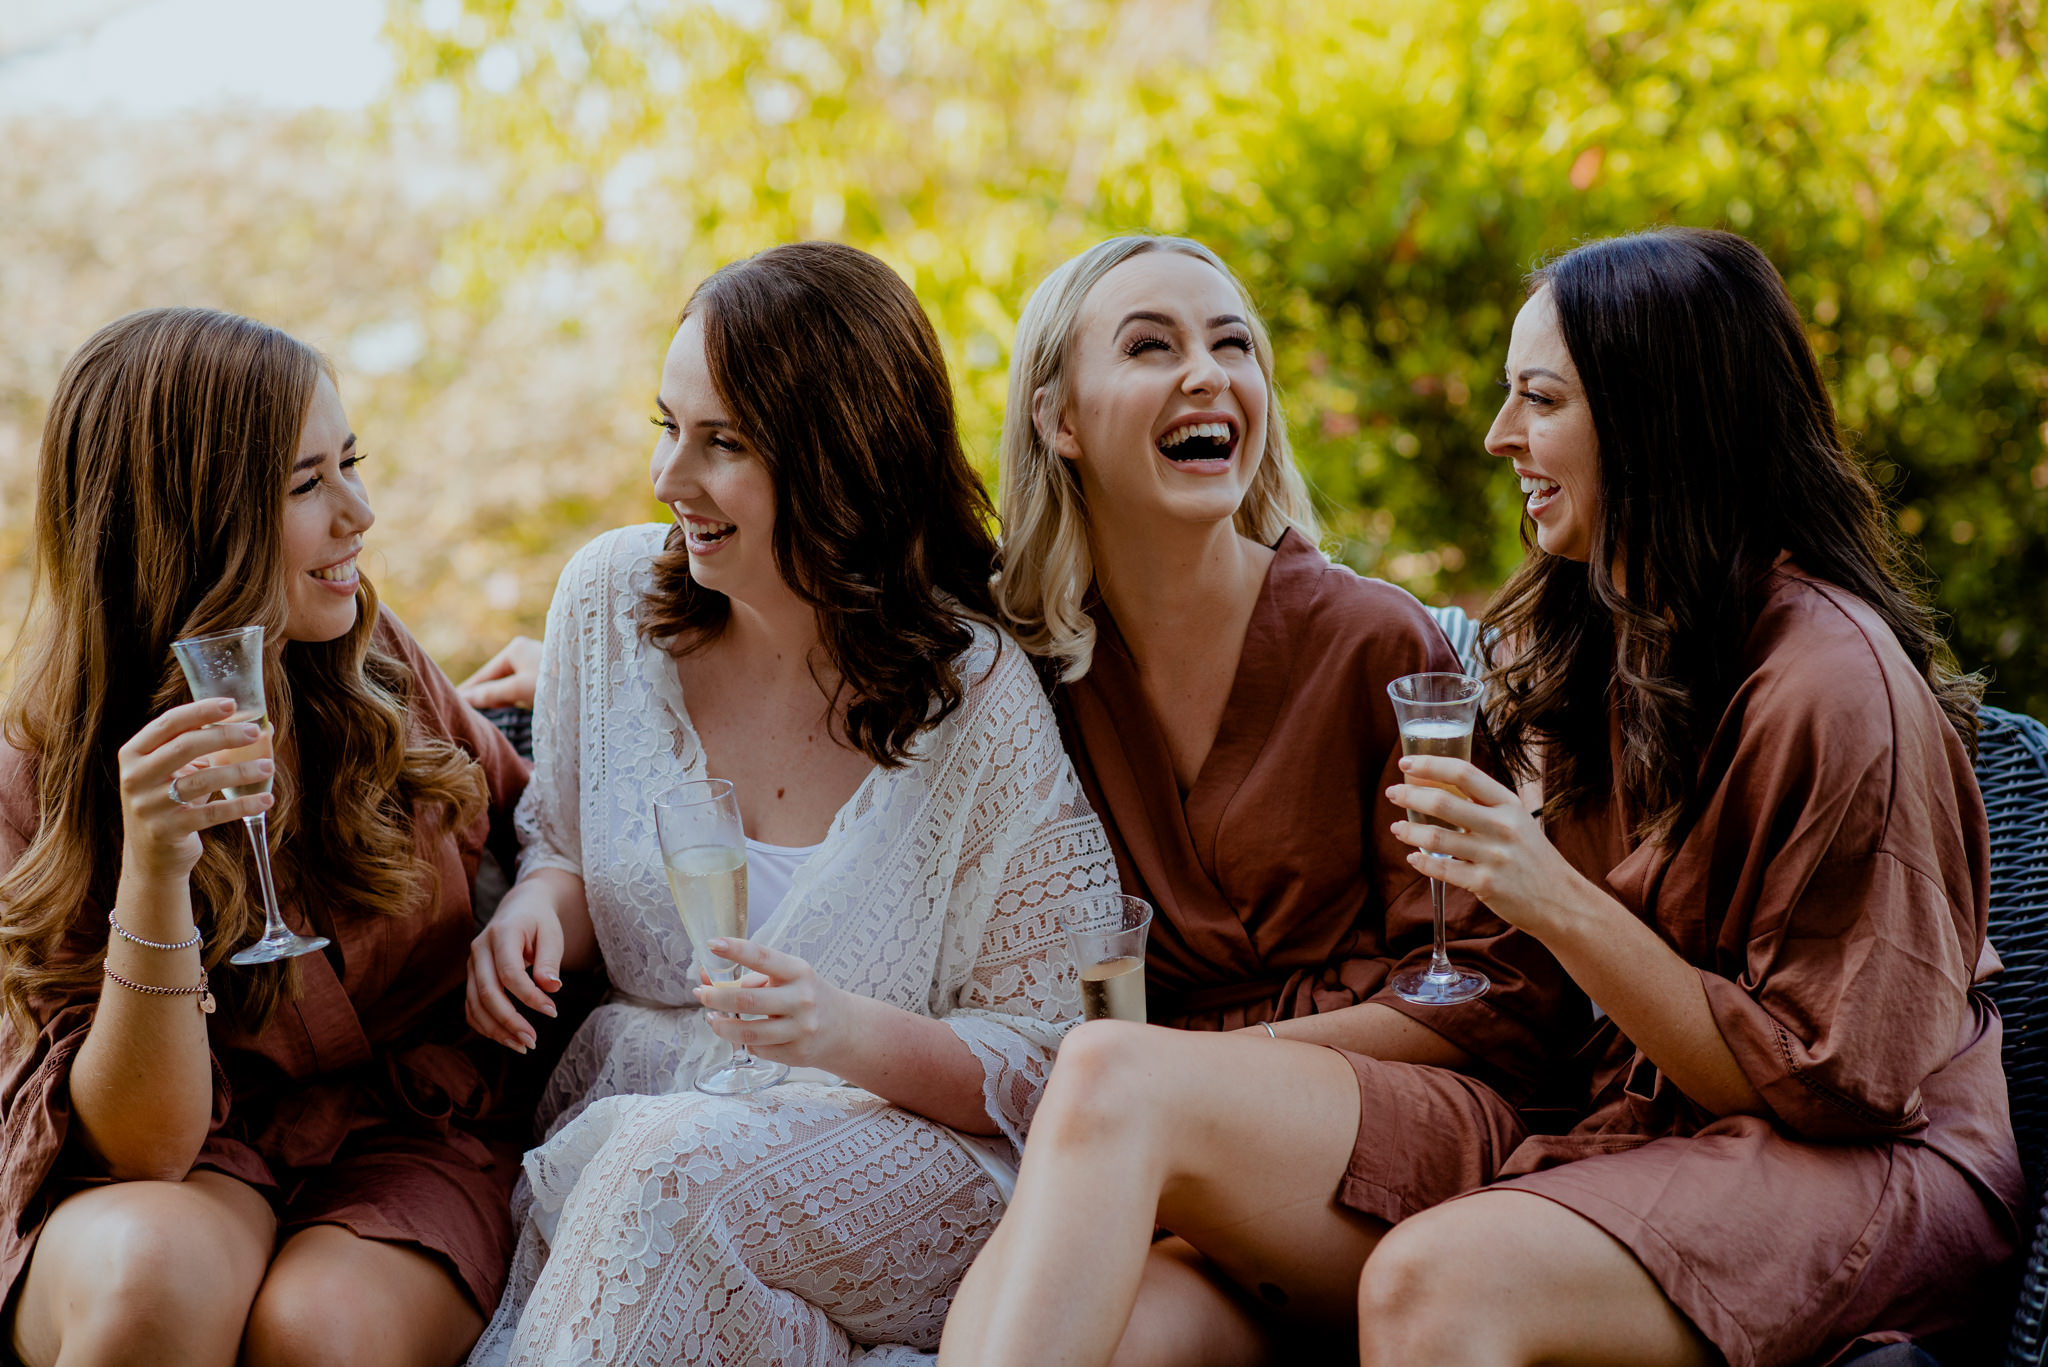 Four women in robes laugh together and drink champagne